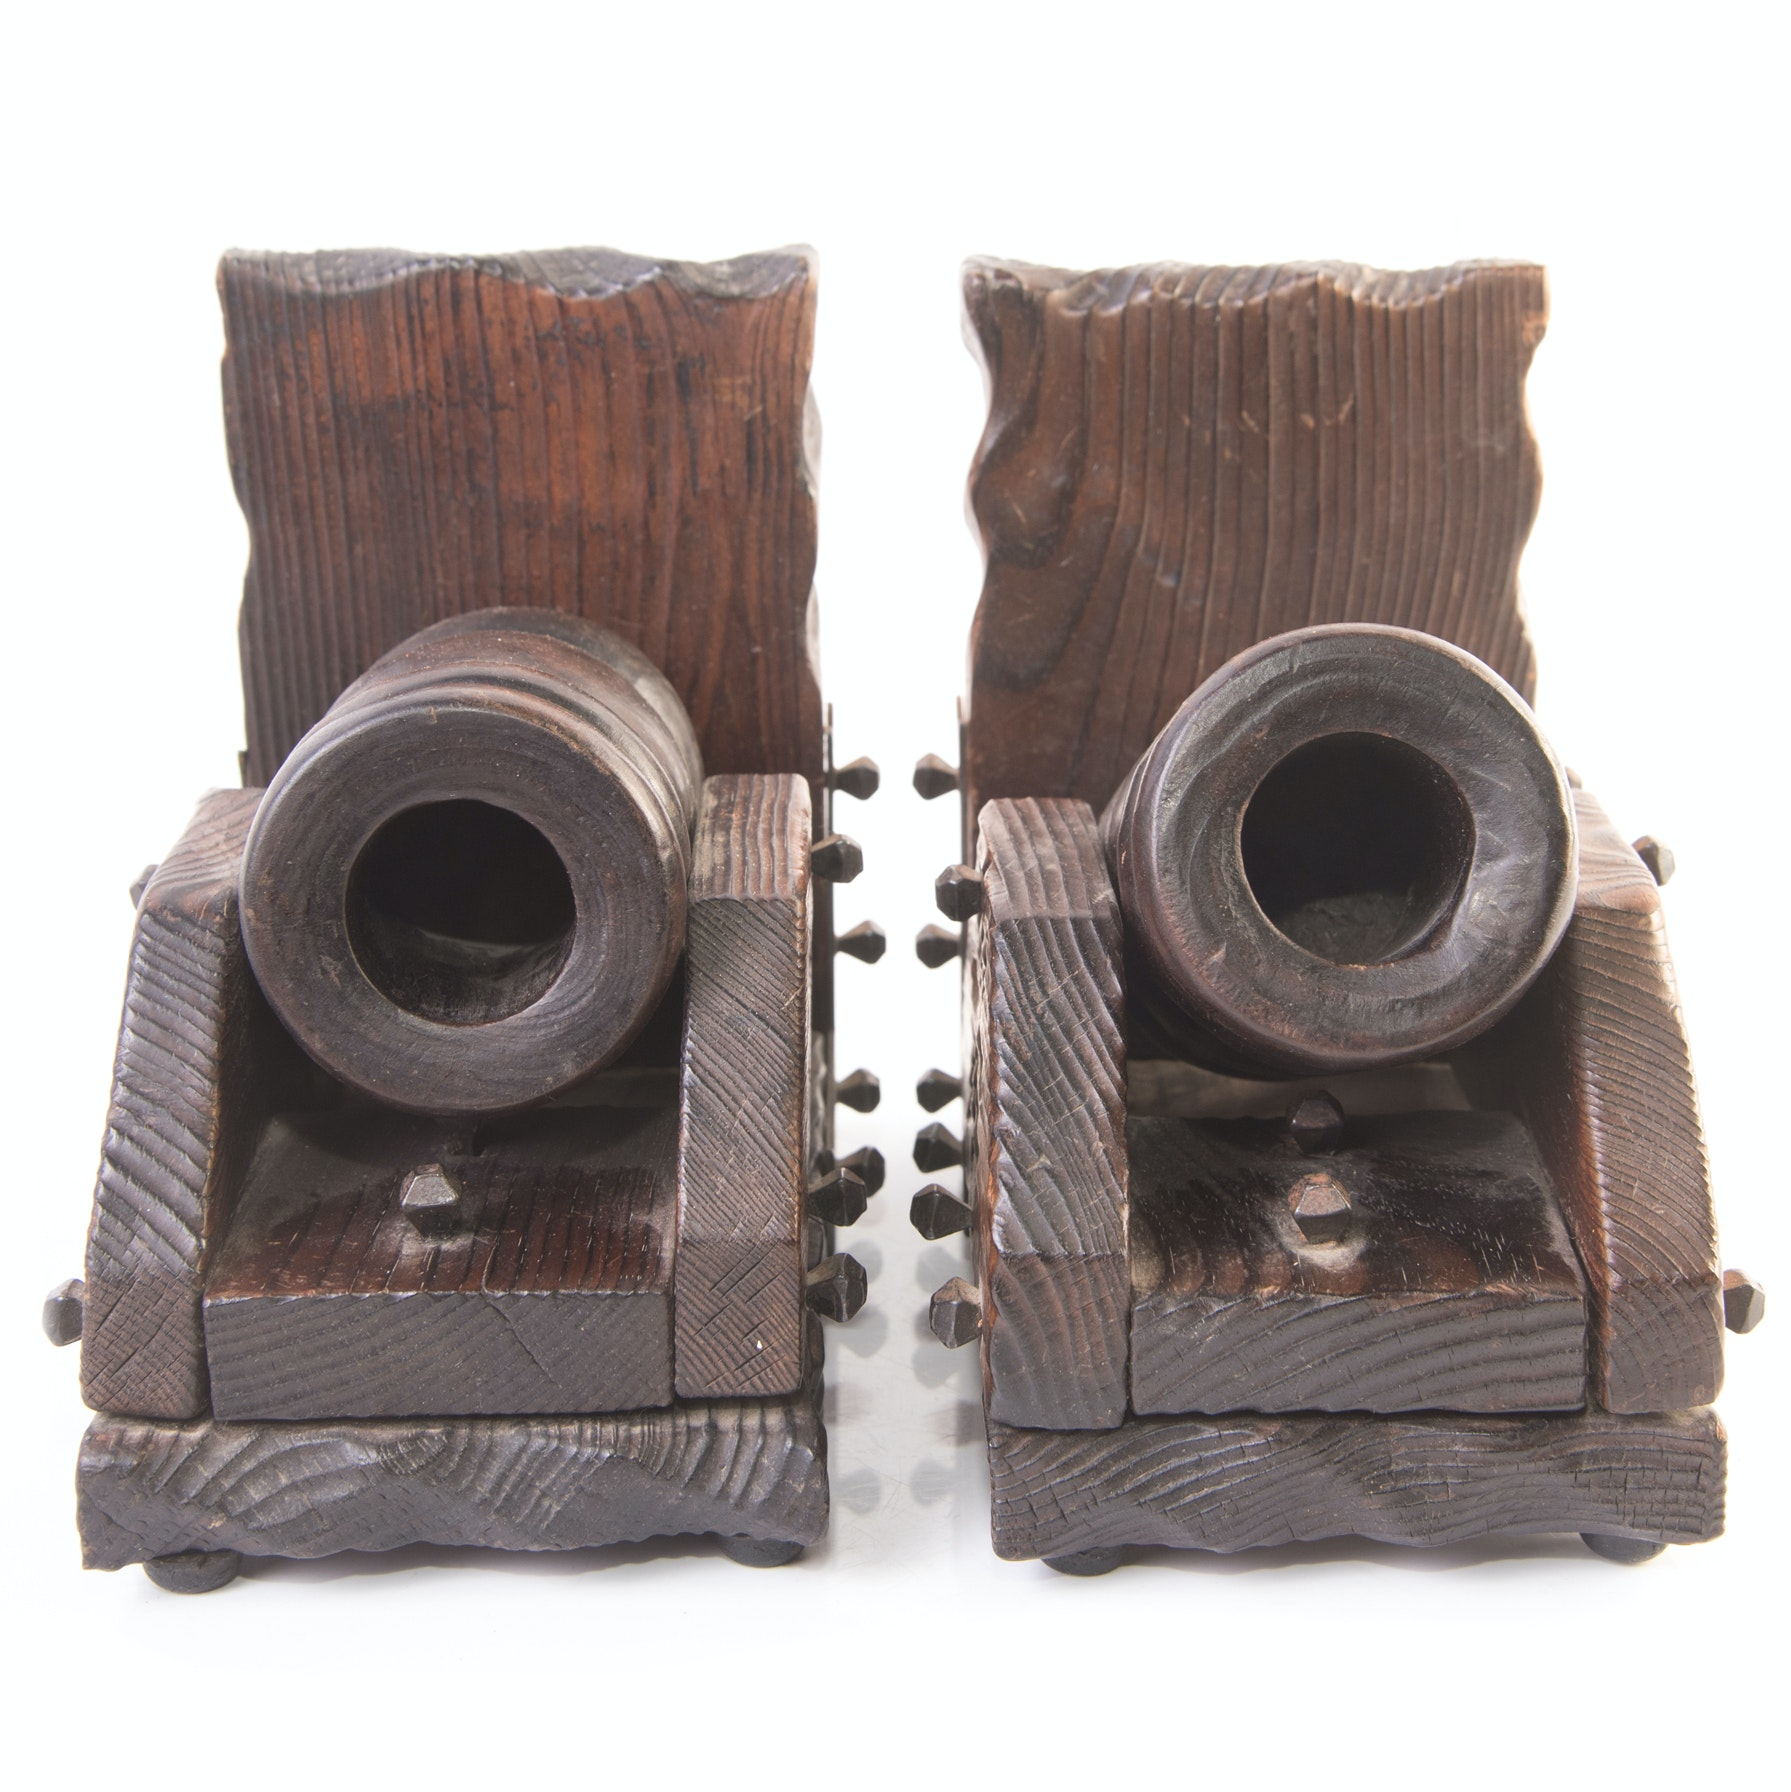 Vintage Wooden Cannon Bookends